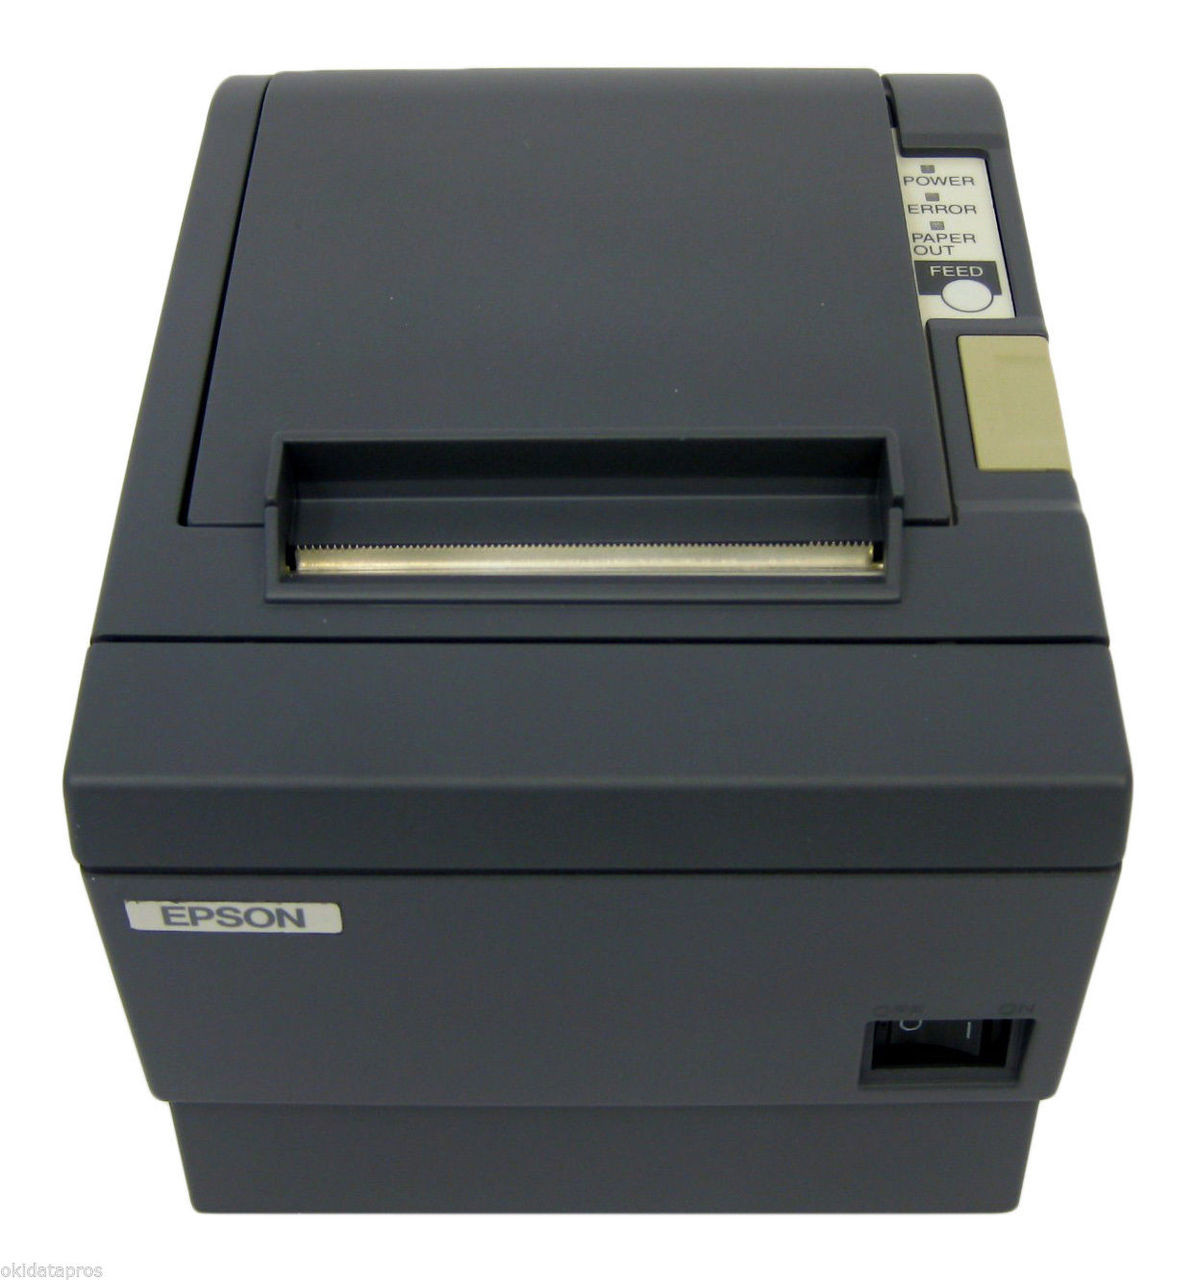 EPSON TM-T88 MODEL M129C WINDOWS XP DRIVER DOWNLOAD